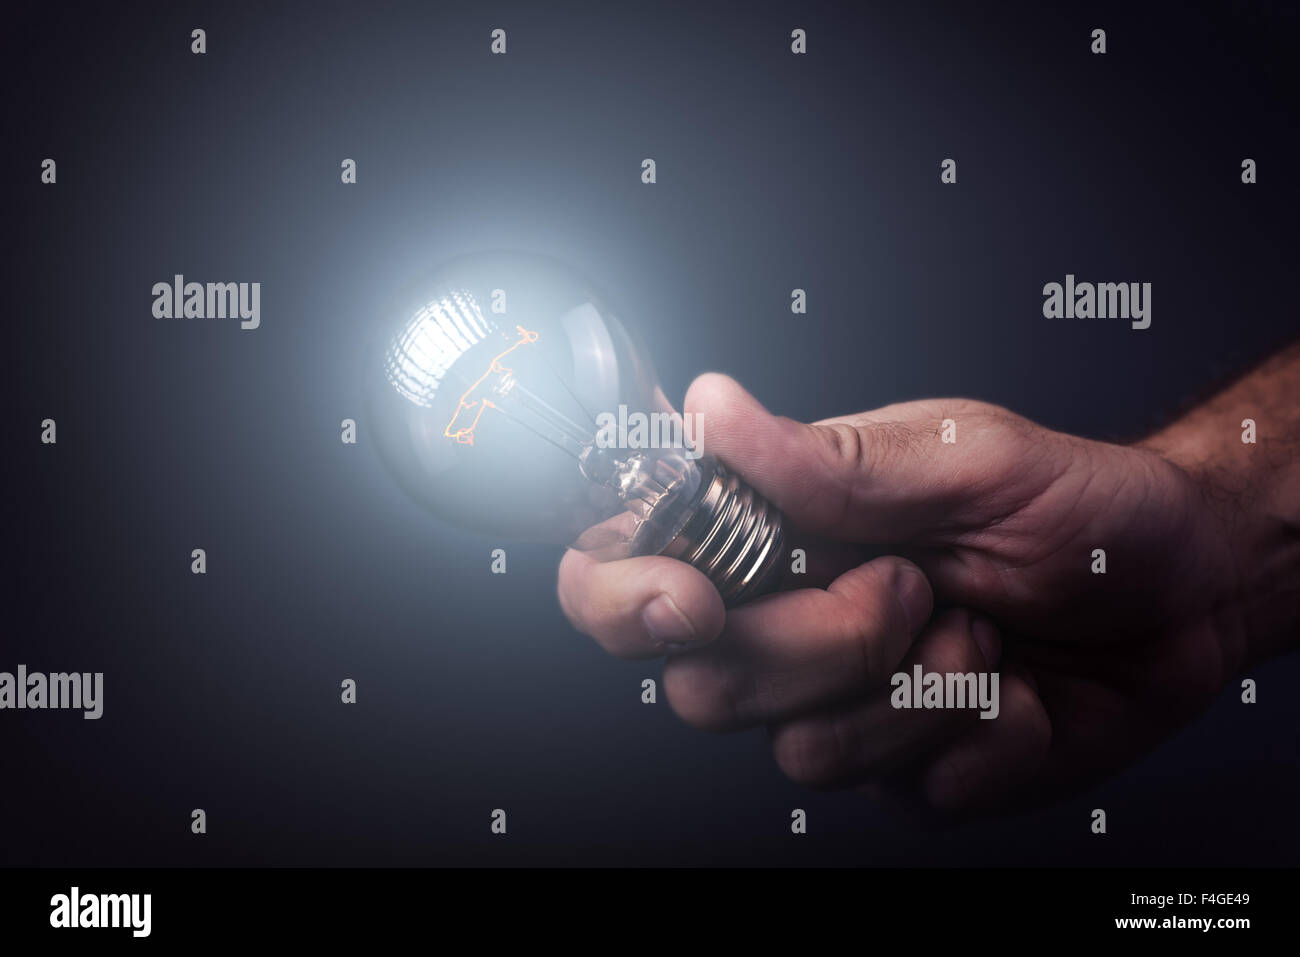 Creative enlightenment, understanding and generating new ideas, innovator and inventor with hand holding light bulb, - Stock Image